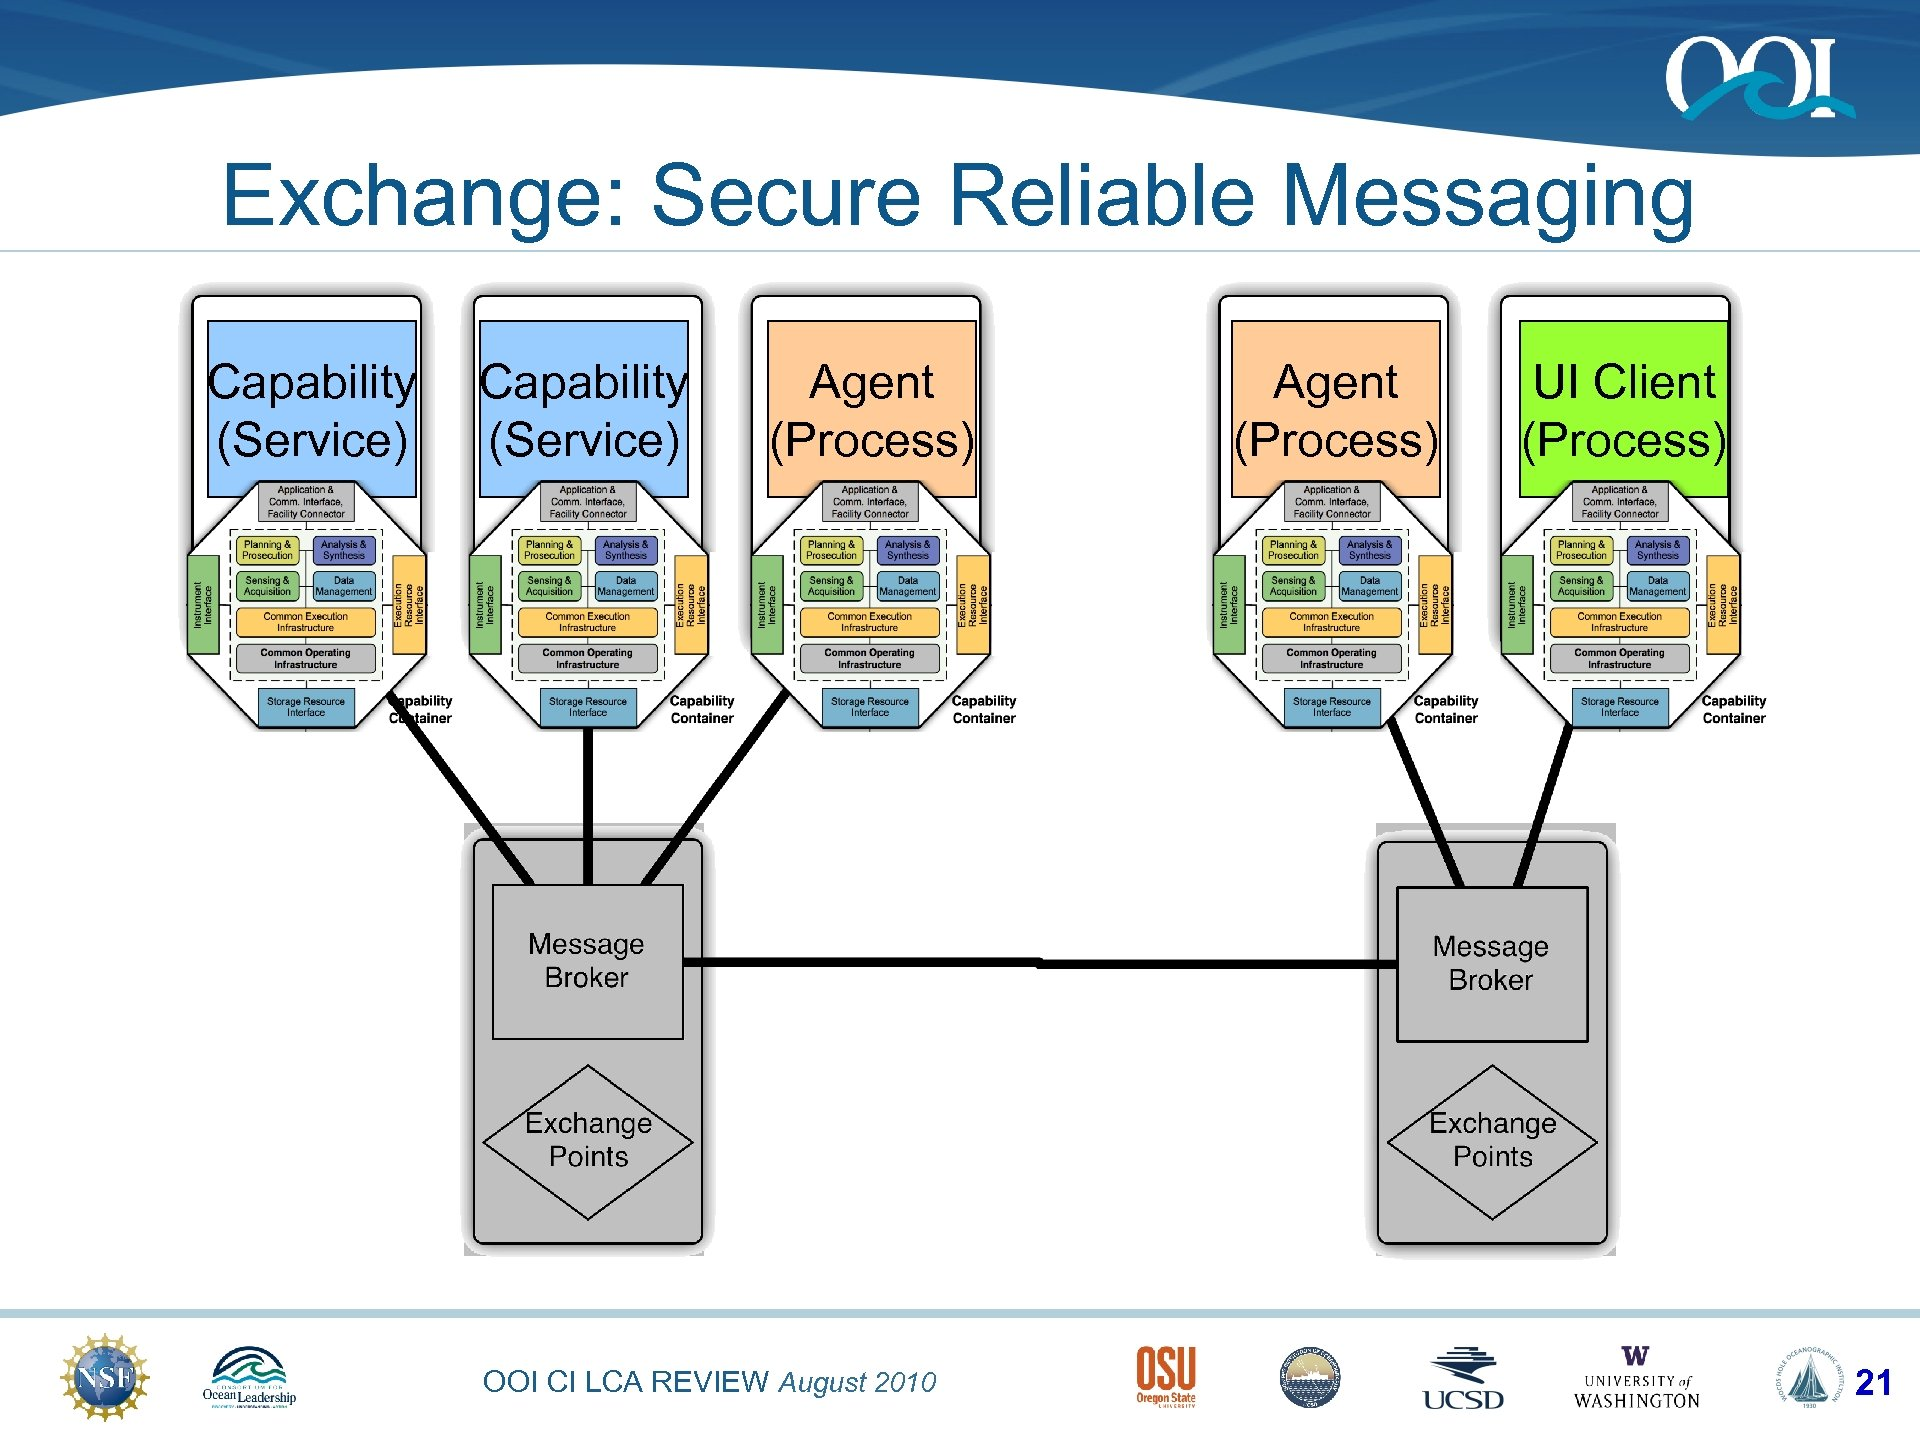 Exchange: Secure Reliable Messaging Capability (Service) Agent (Process) OOI CI LCA REVIEW August 2010